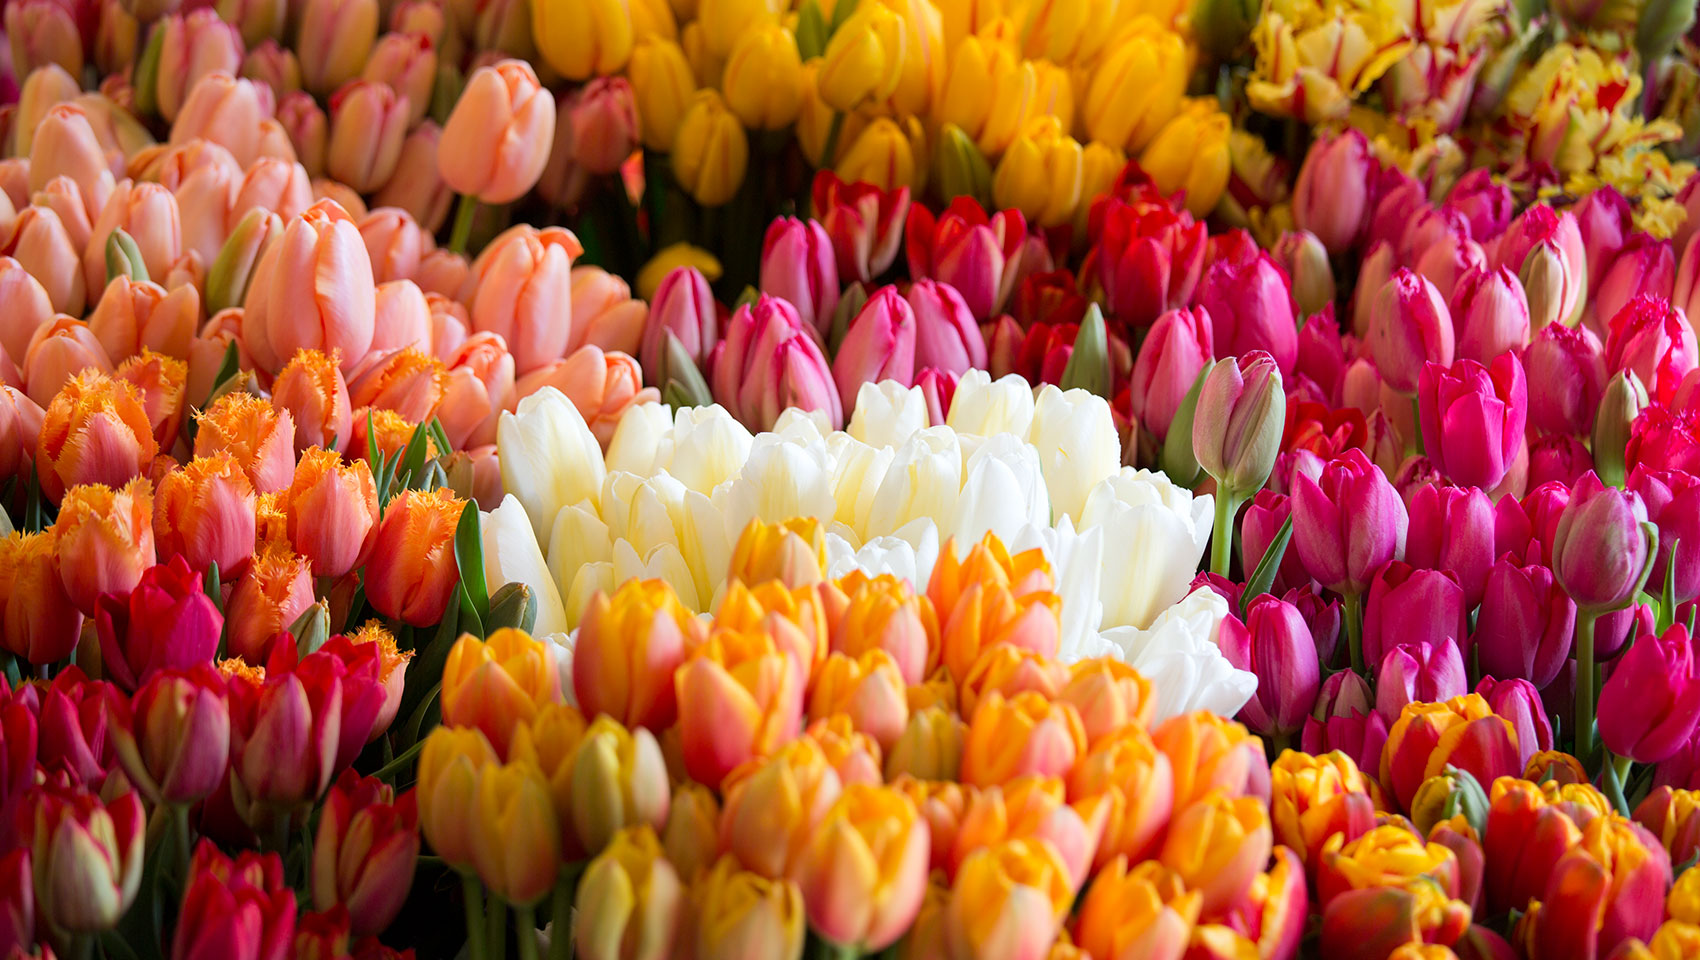 bushels of multicolored tulips from Pike Place Market